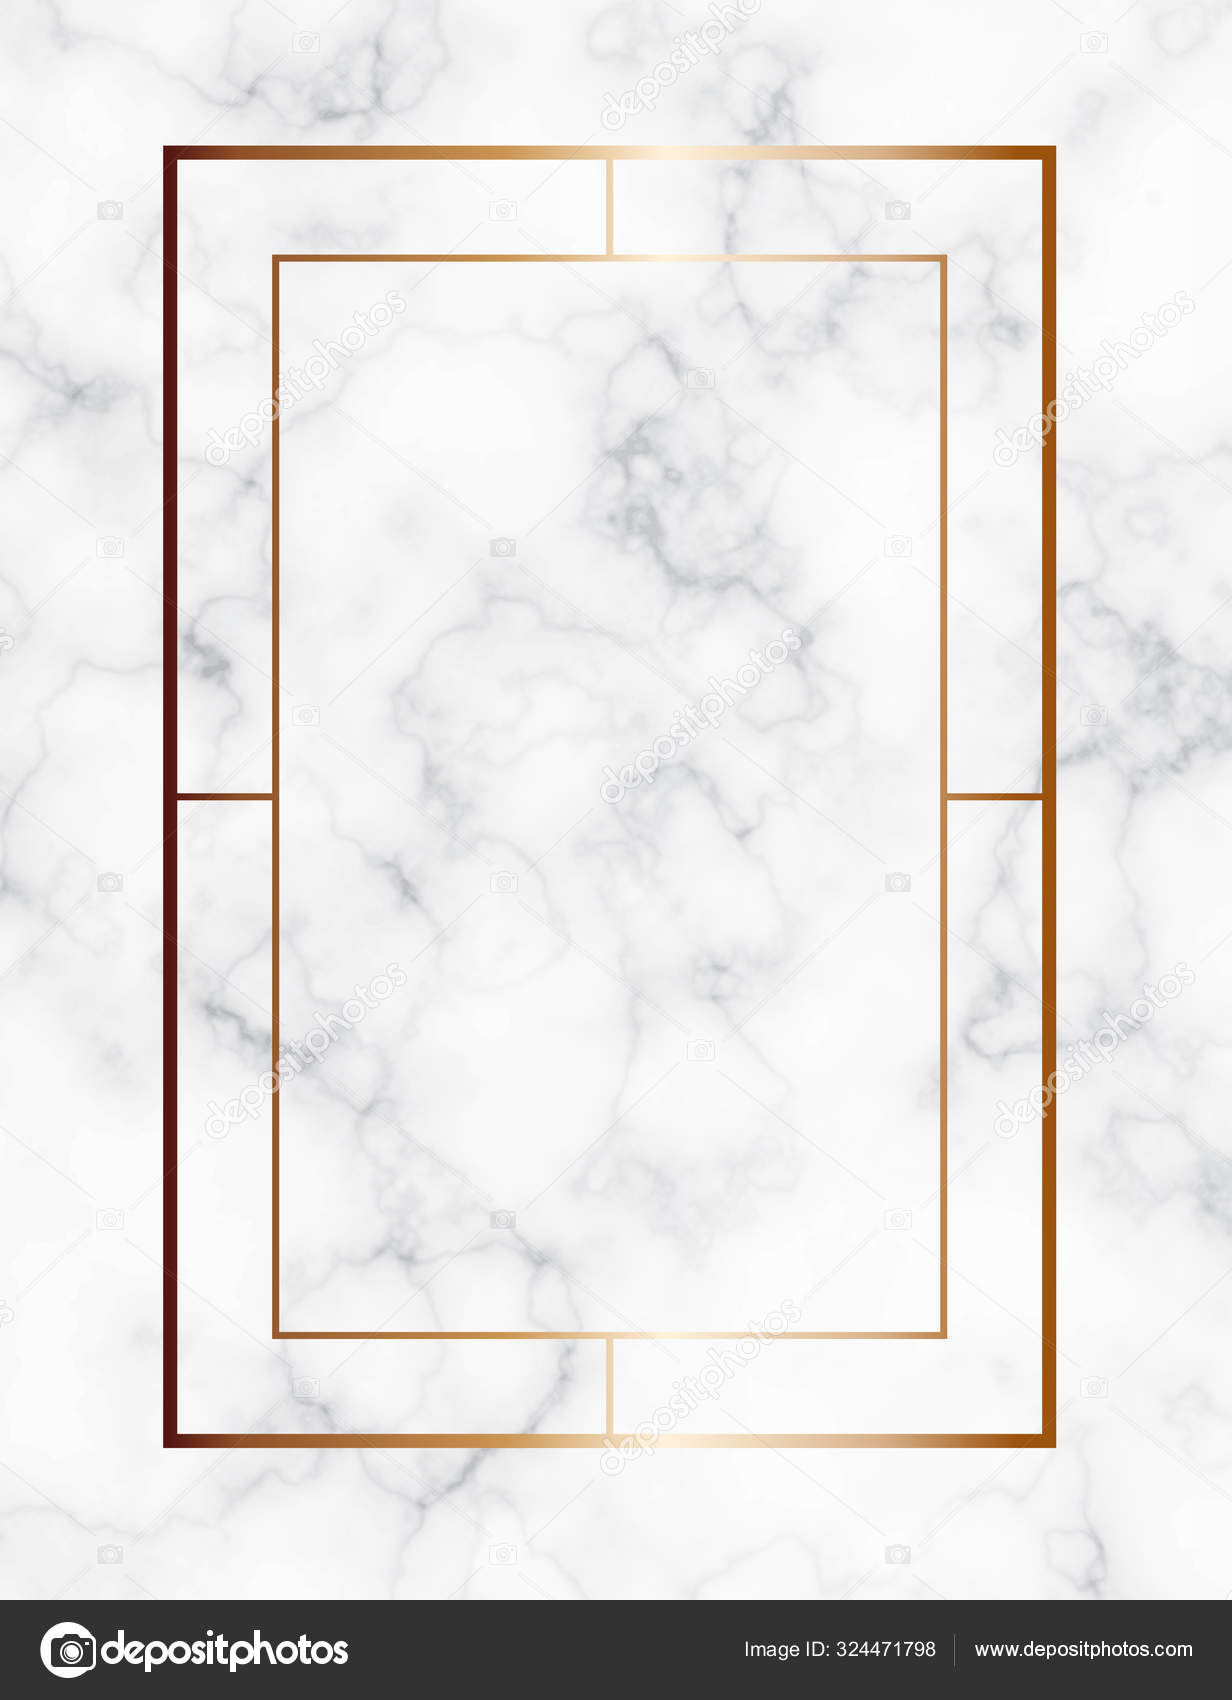 Marble Background With Gold Geometric Frame Luxury Template For Wedding Invitation Cards With White Marble Texture And Golden Geometric Pattern Stock Vector C Vesta2k Gmail Com 324471798